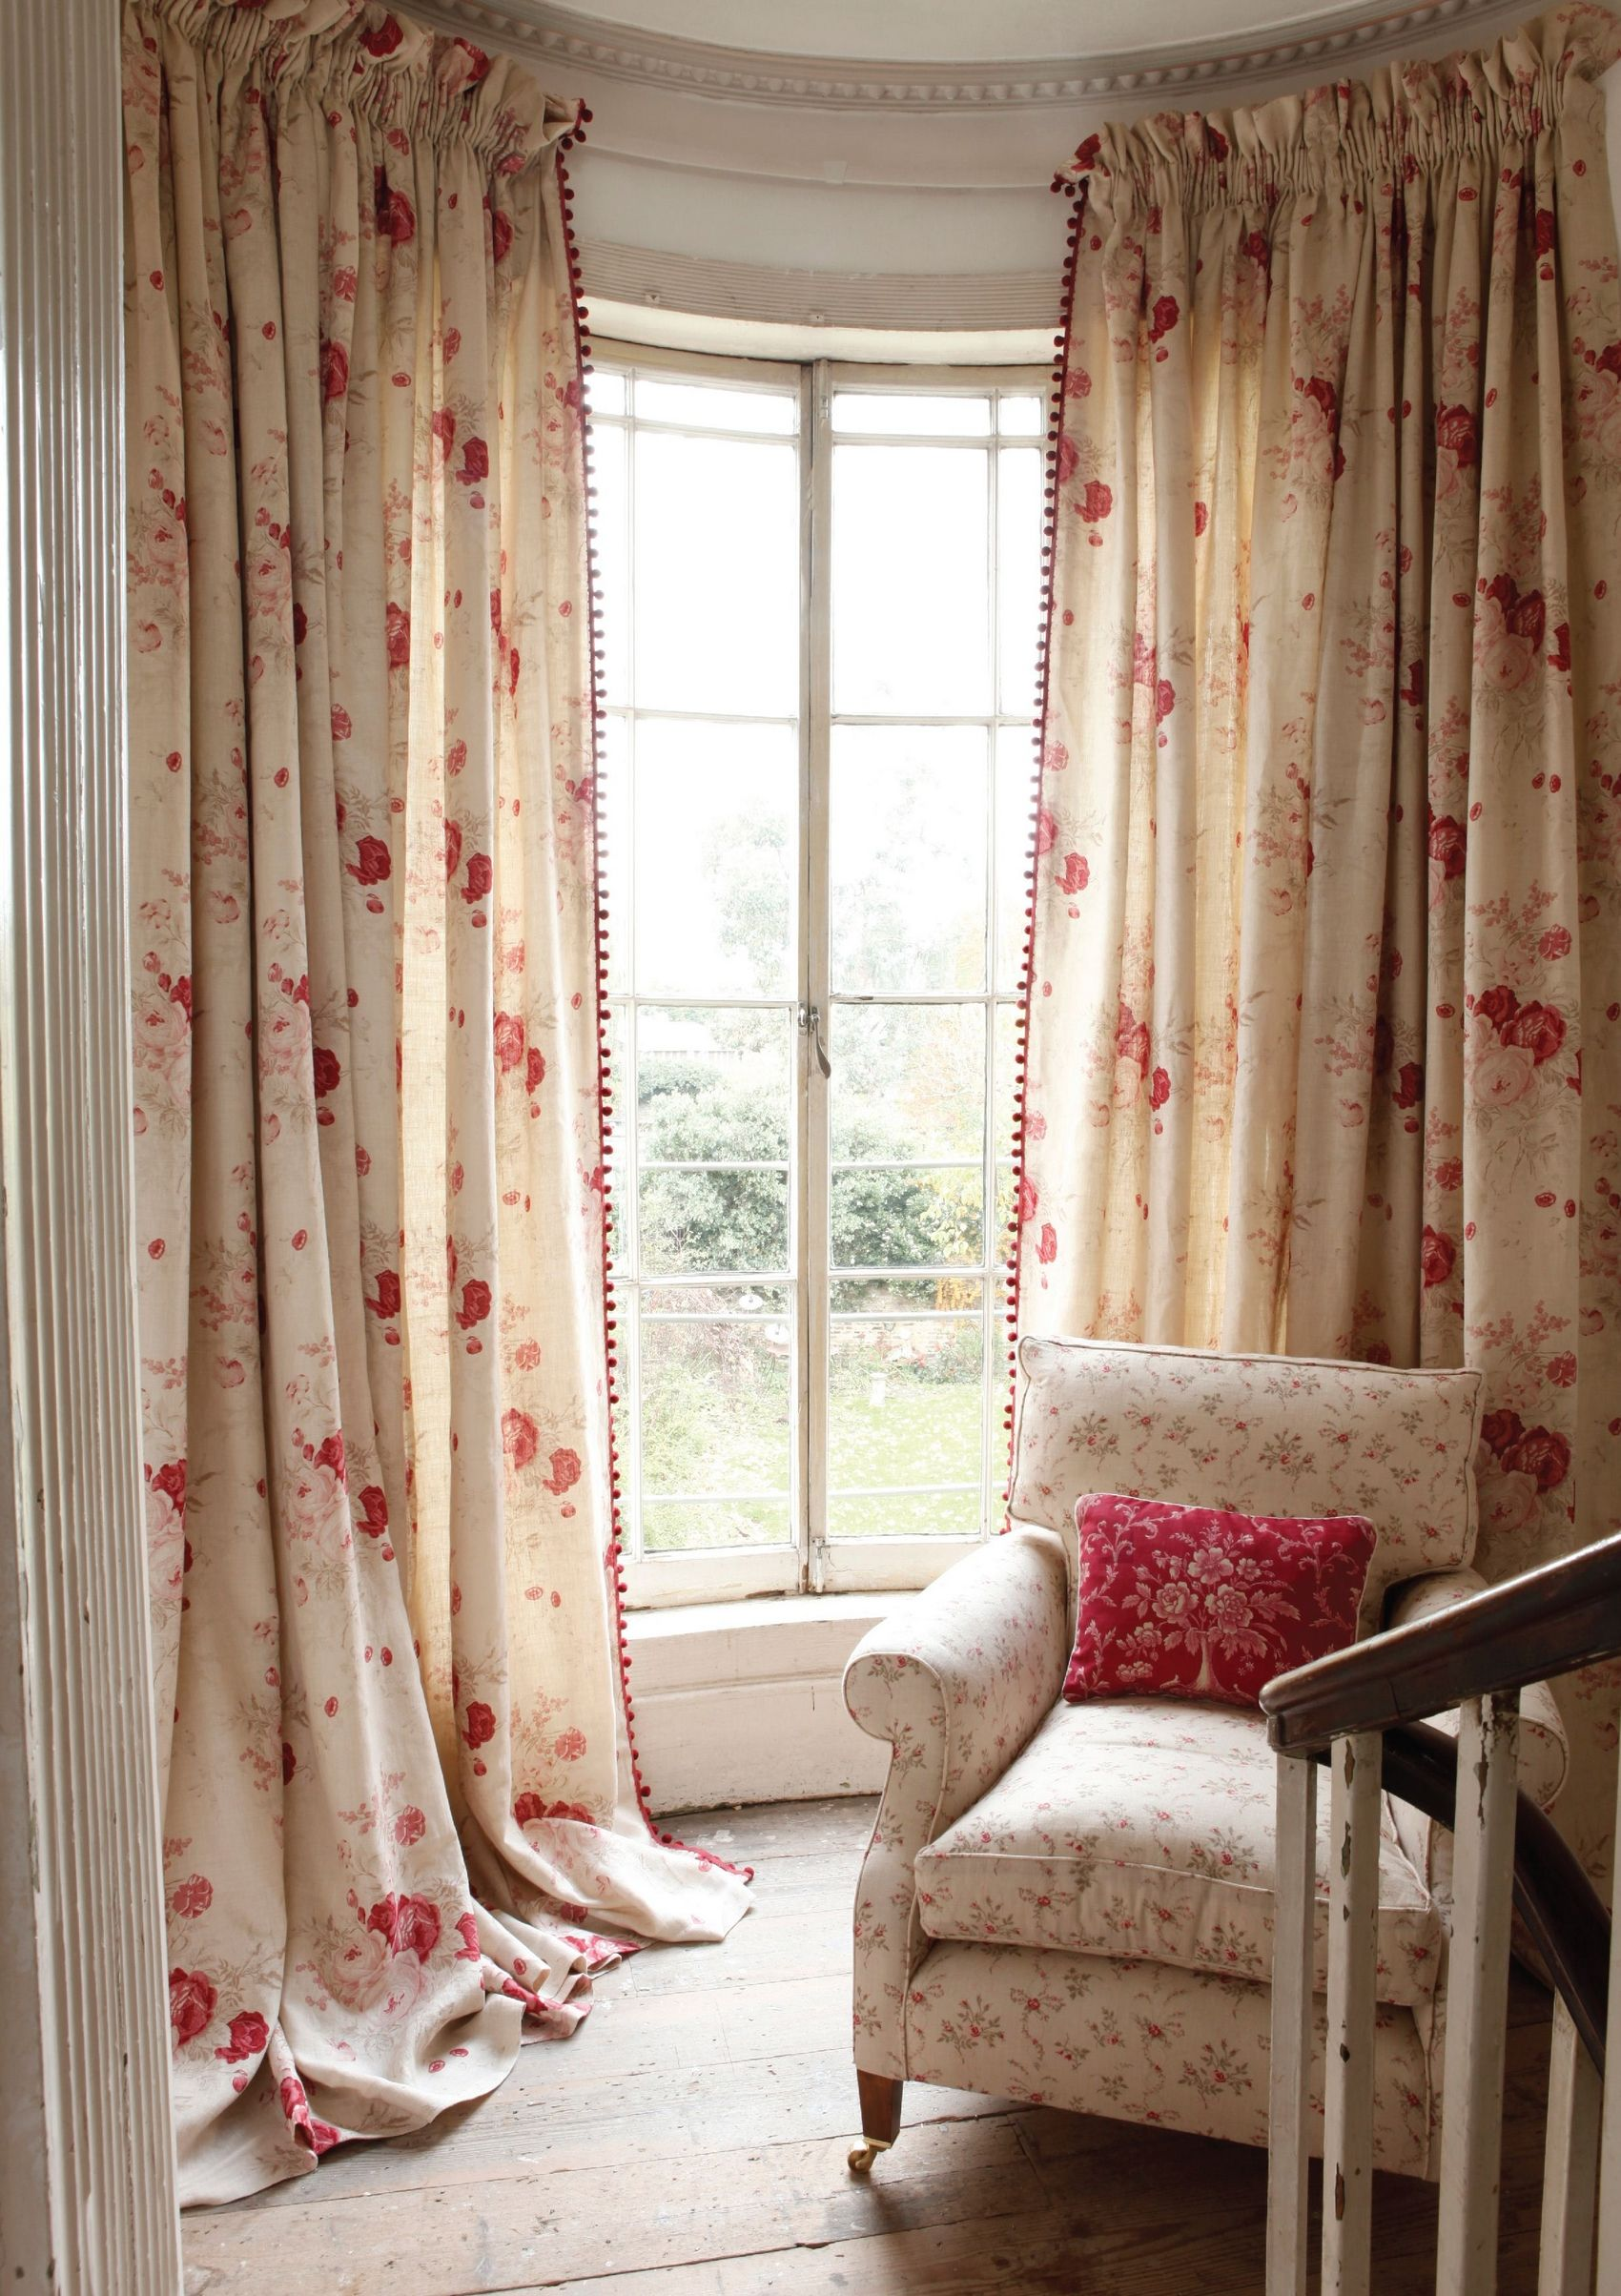 bay window floral drapes waverly norfolk rose waverly norfolk